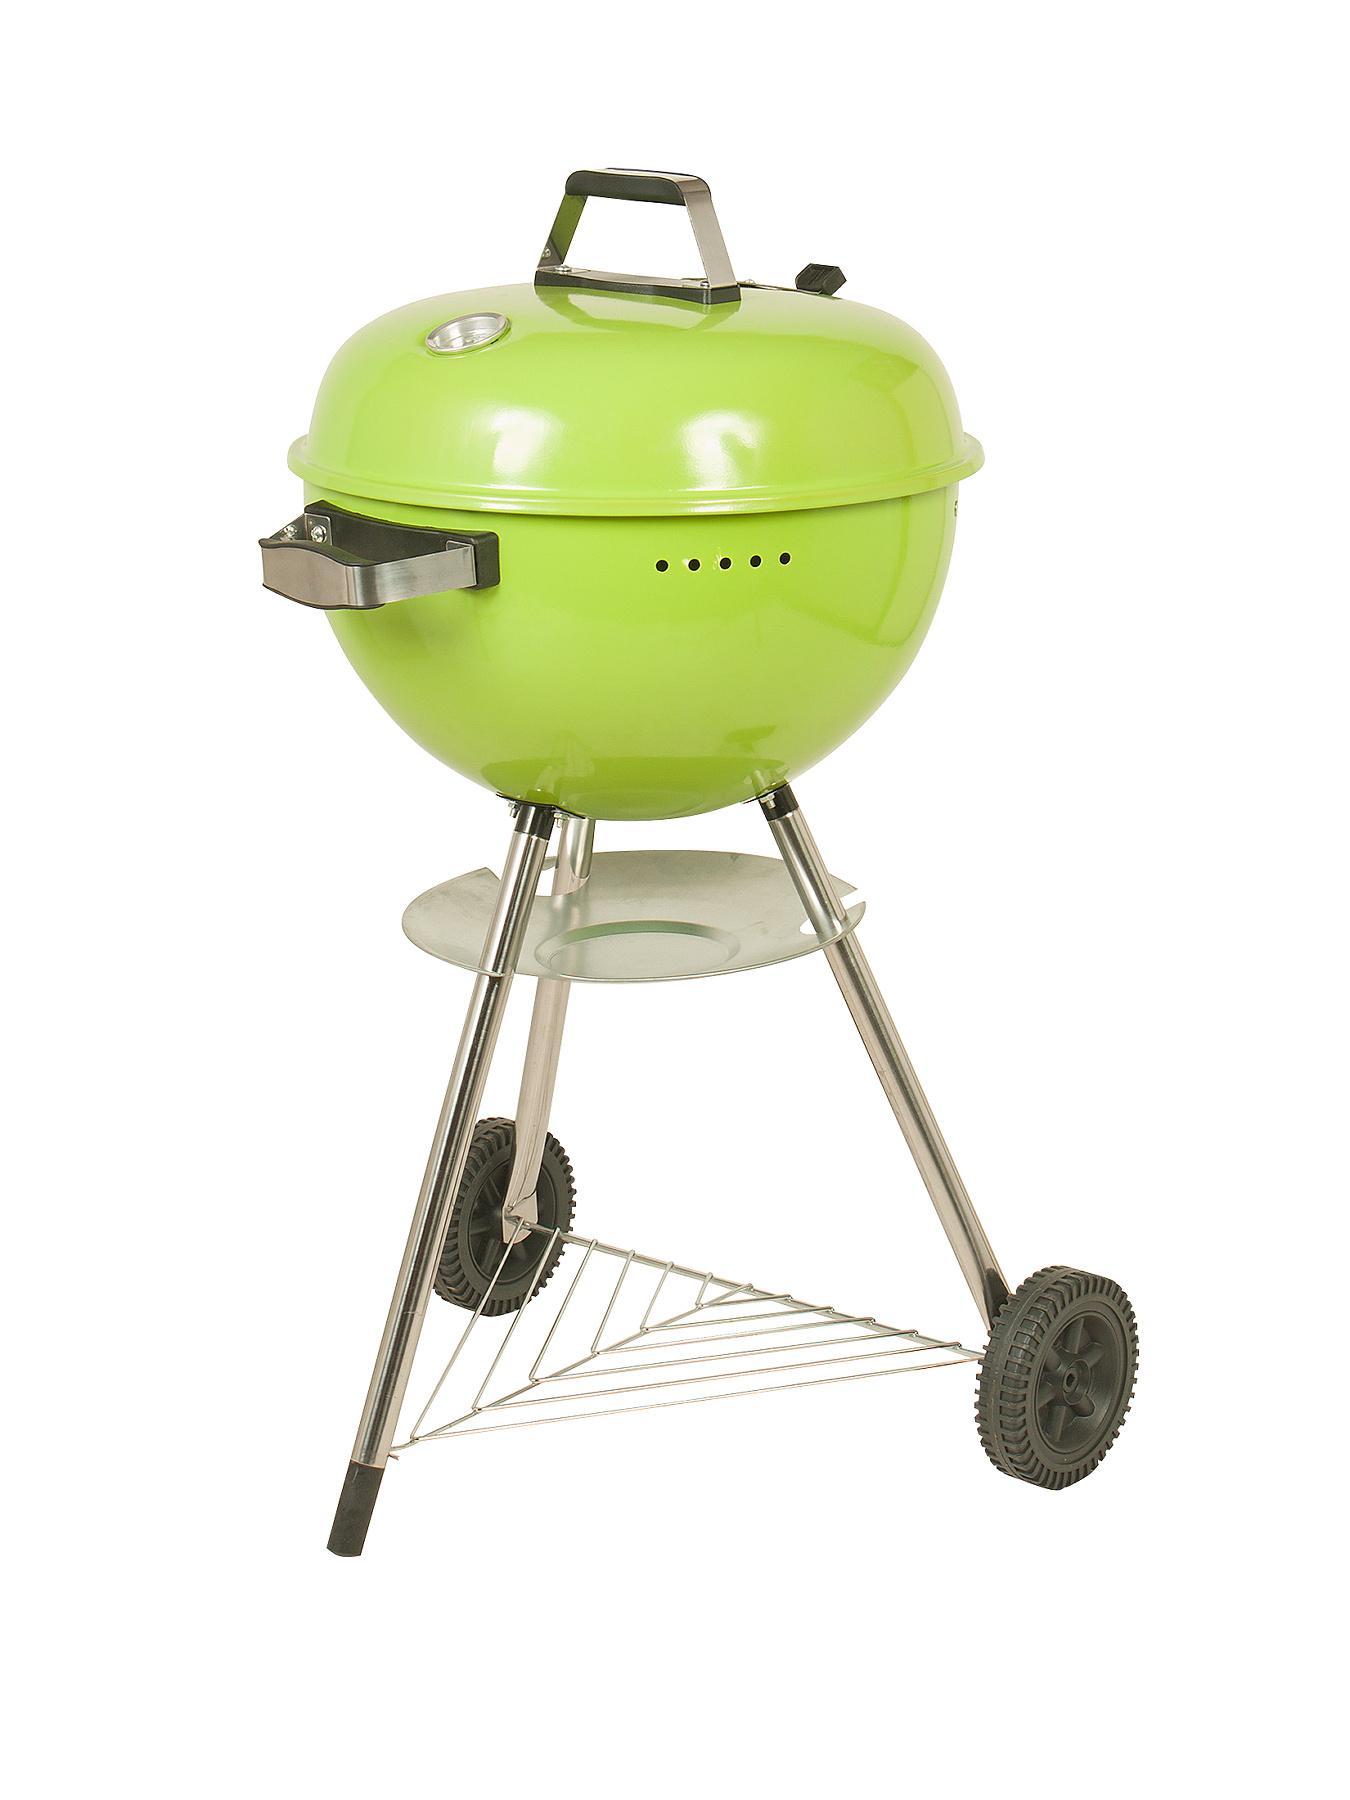 Deluxe Charcoal Kettle BBQ - Green - Green, Green